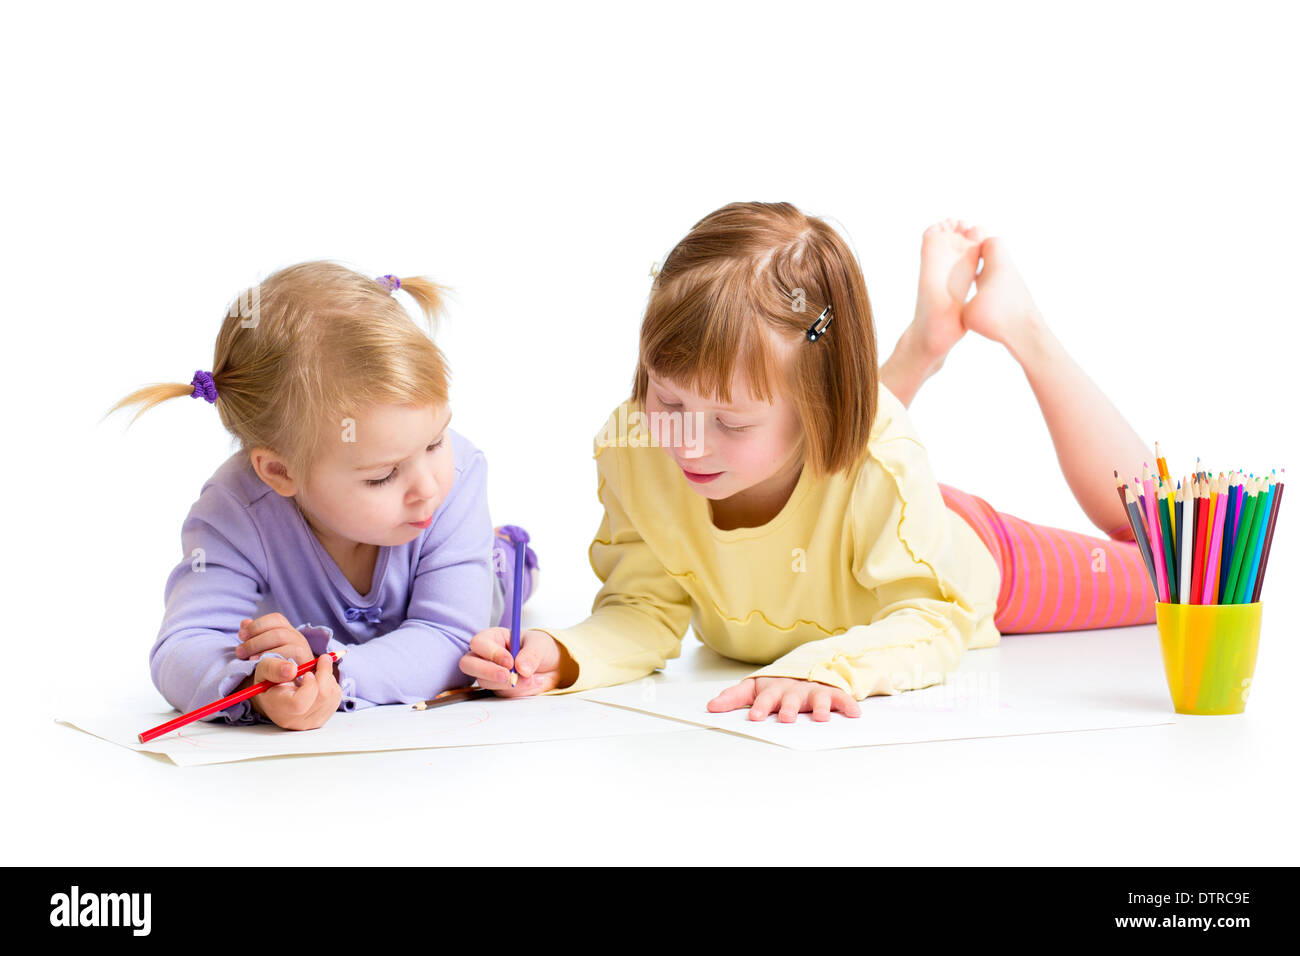 two girls drawing with color pencils together over white - Stock Image